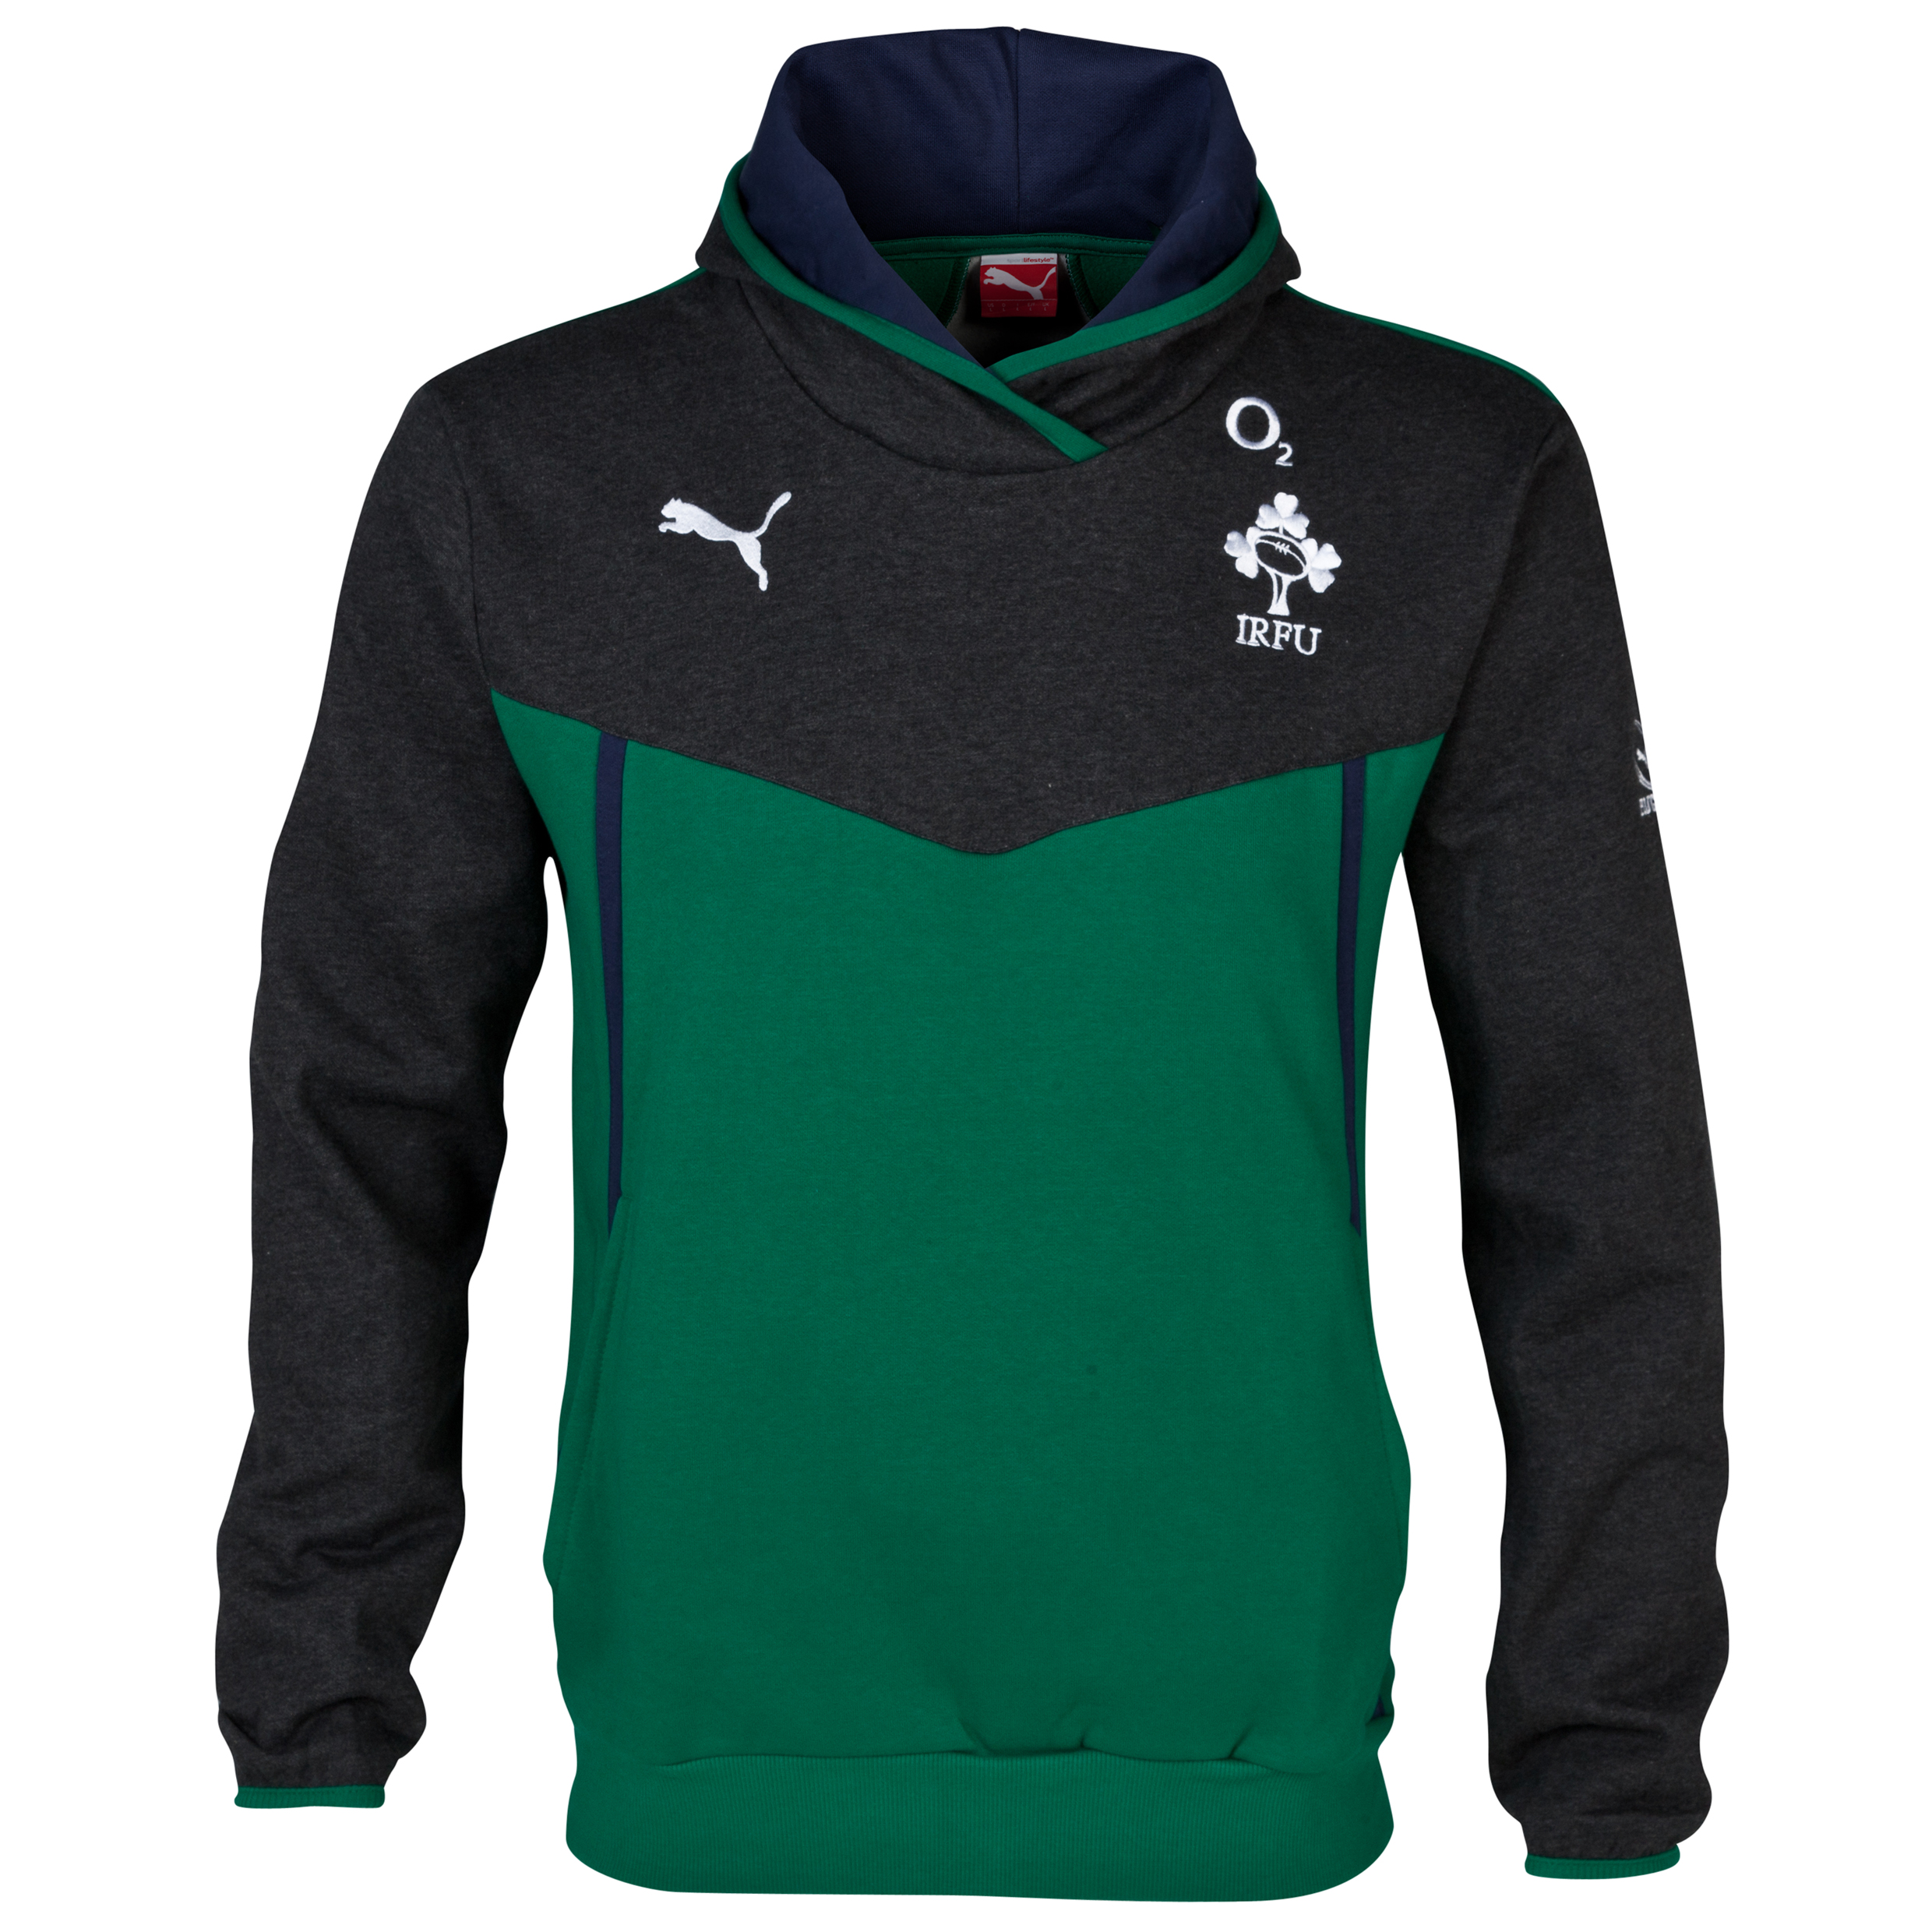 Ireland Overhead Hoodie - Power Green/Dark Grey Heather Green